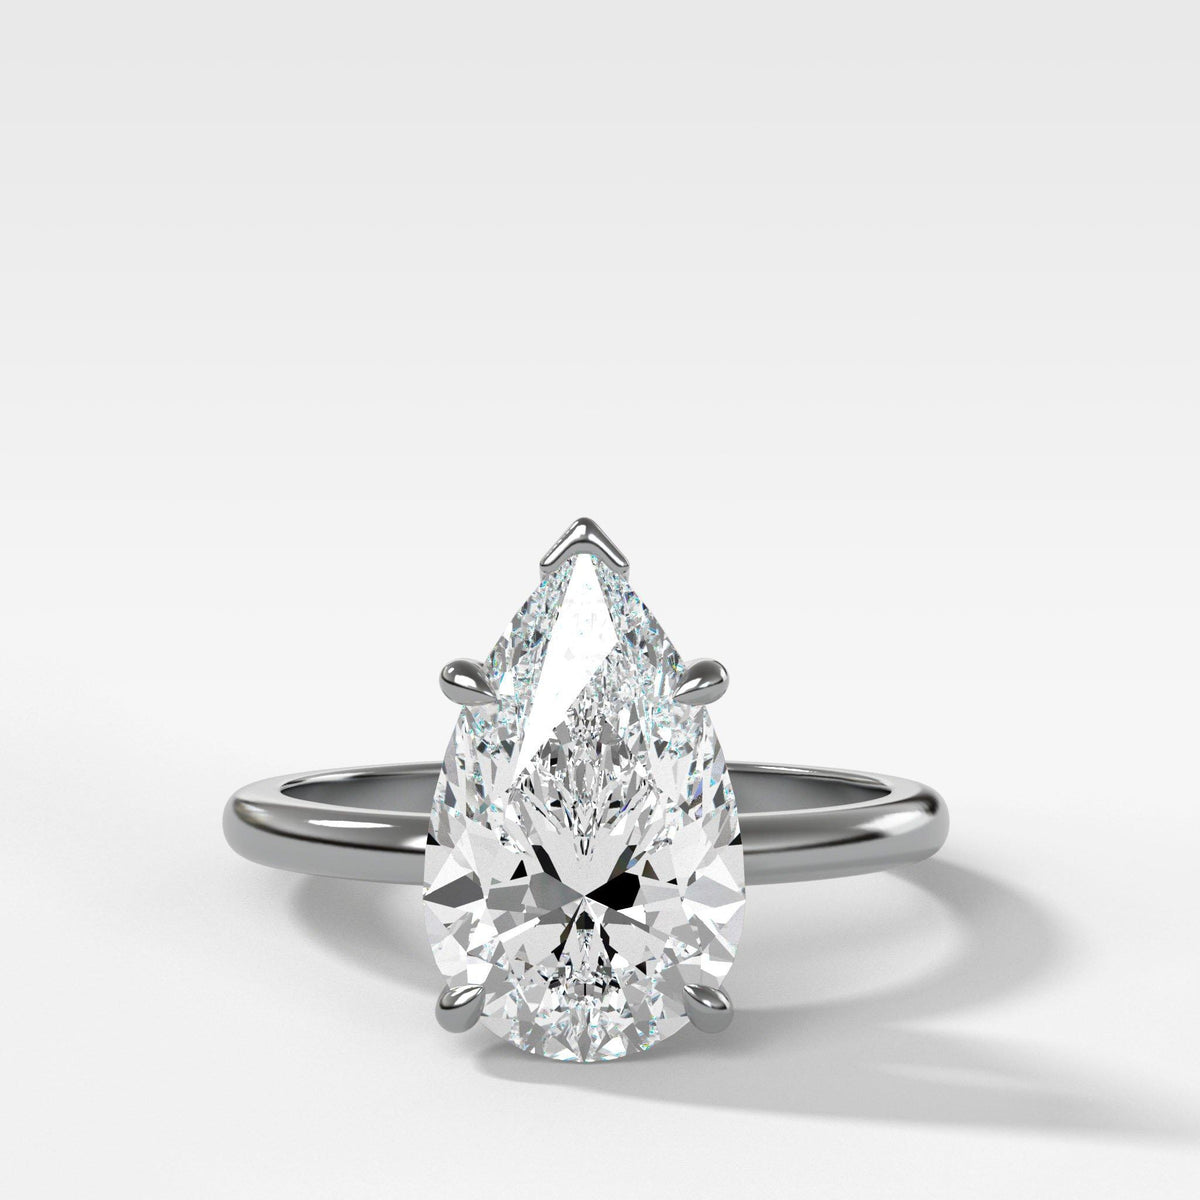 Crescent Solitaire With Pear Cut in White Gold by Good Stone